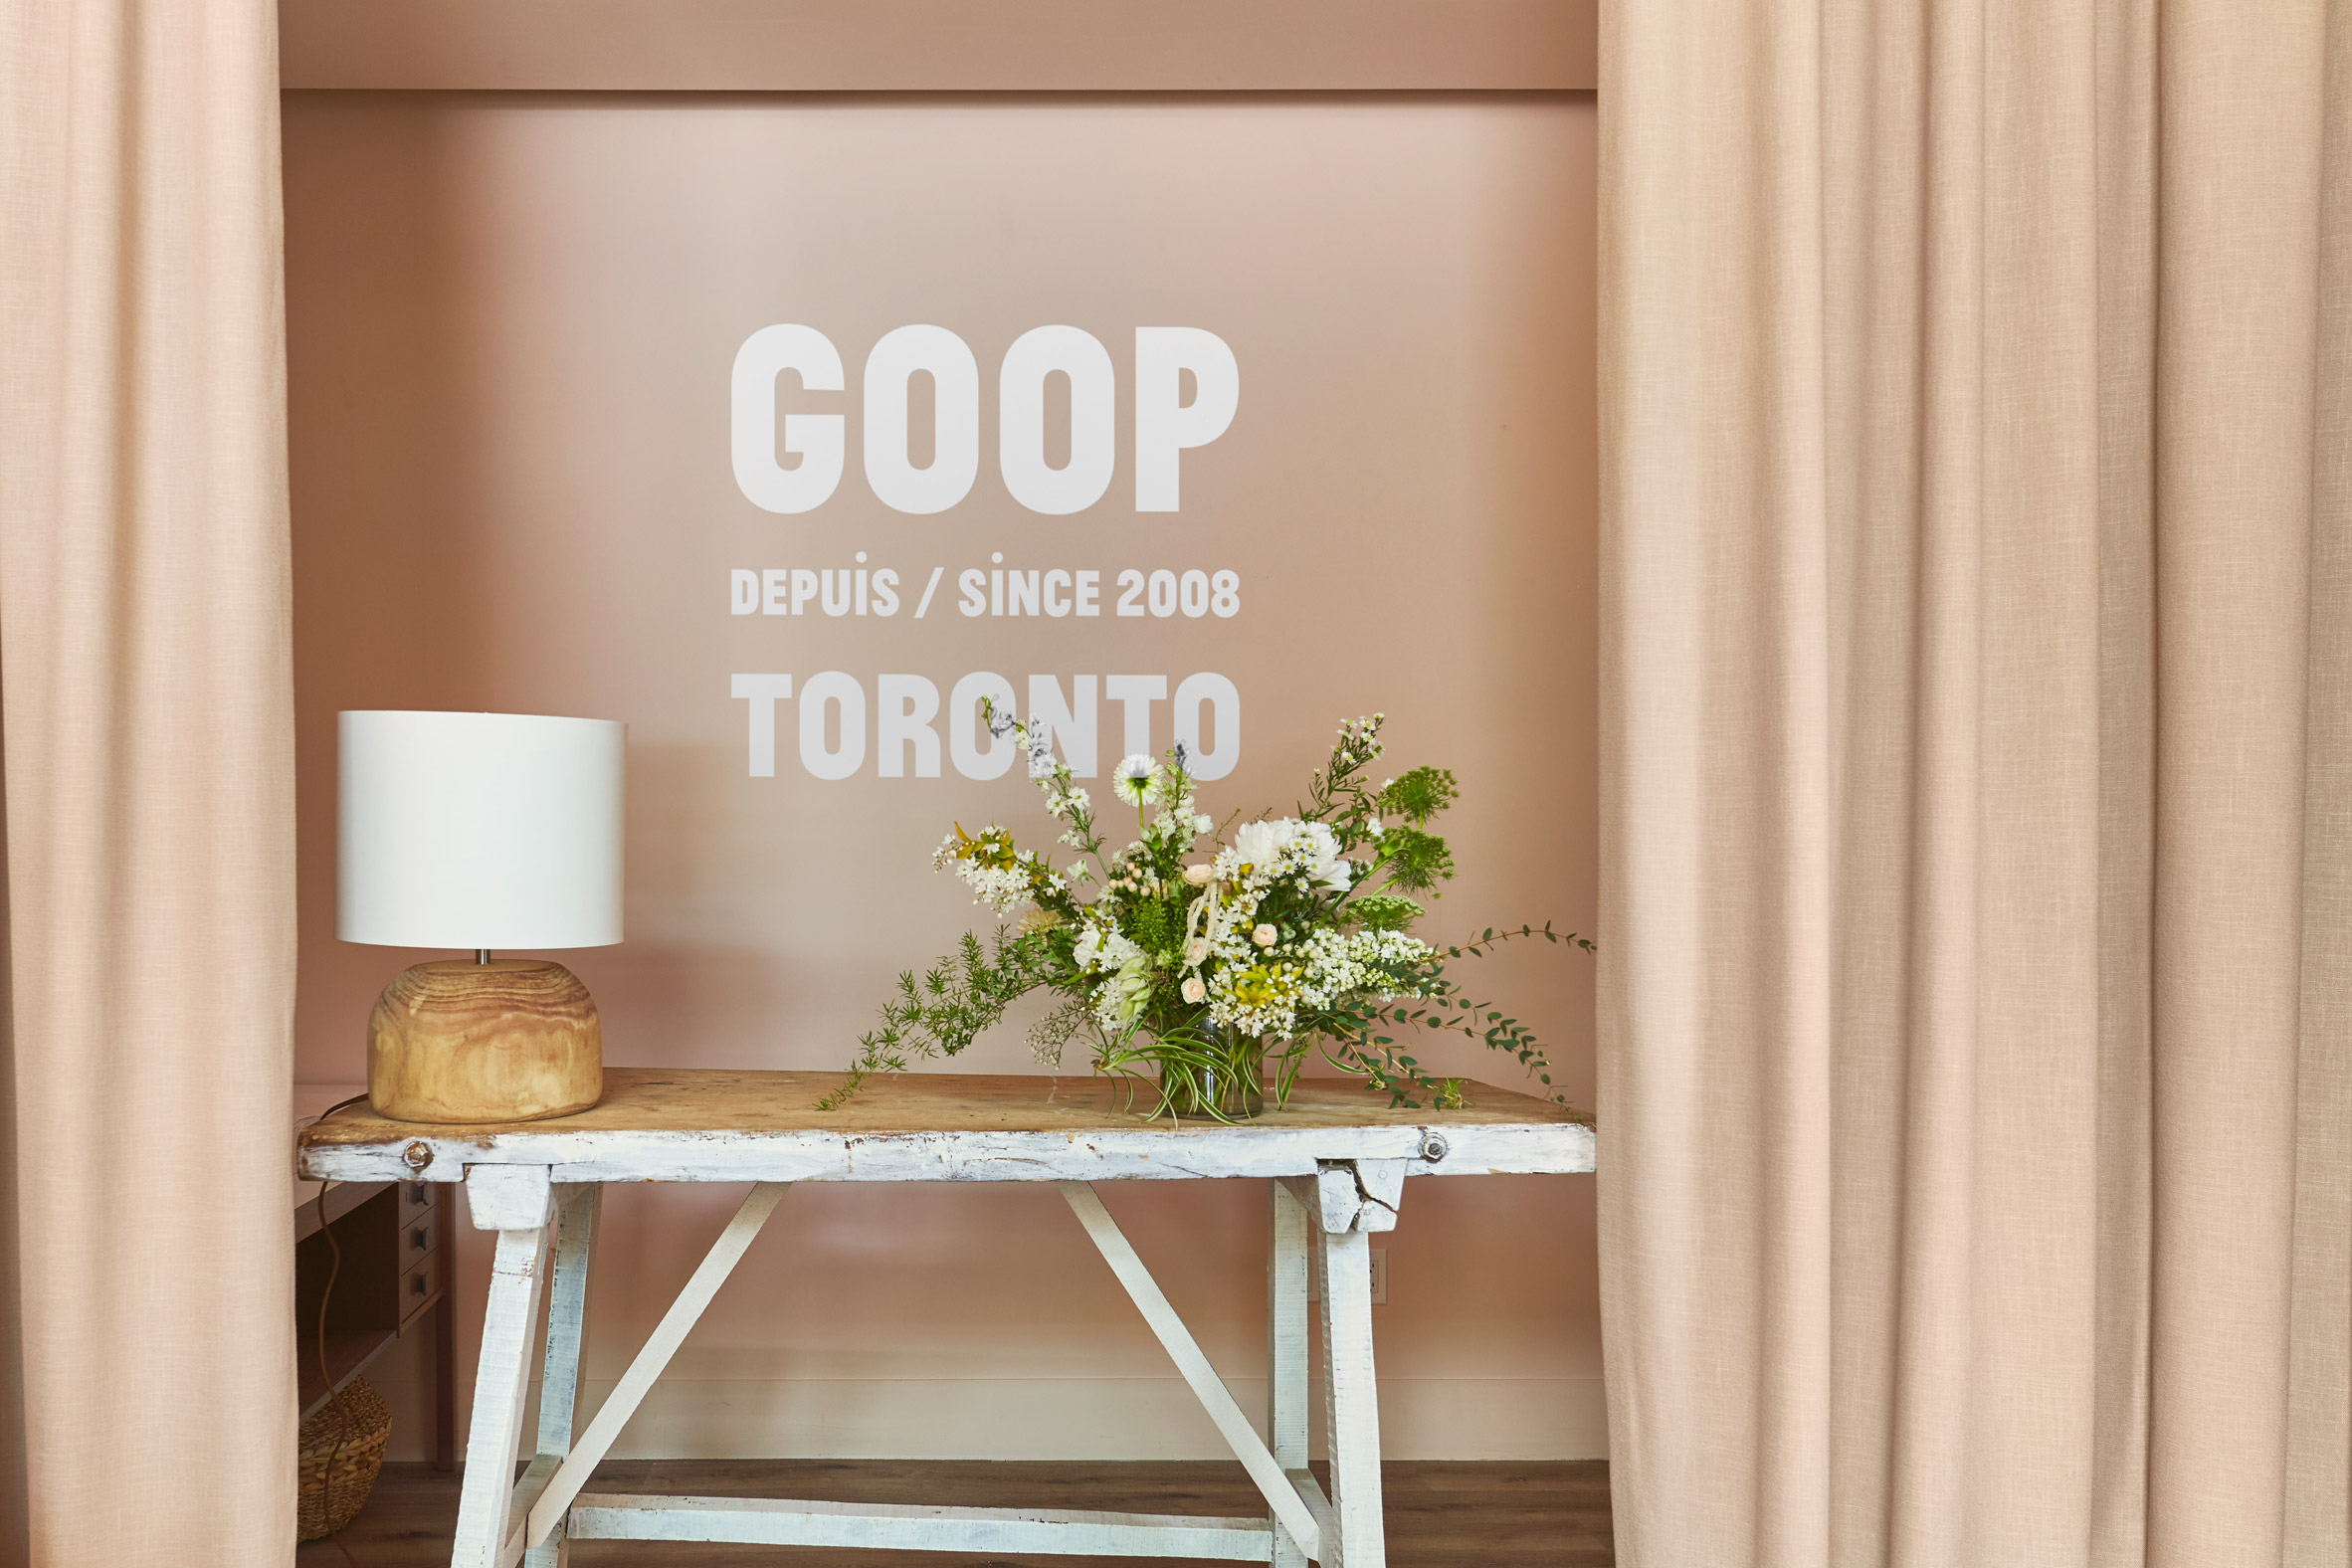 Goop pop-up in Toronto by Yabu Pushelberg